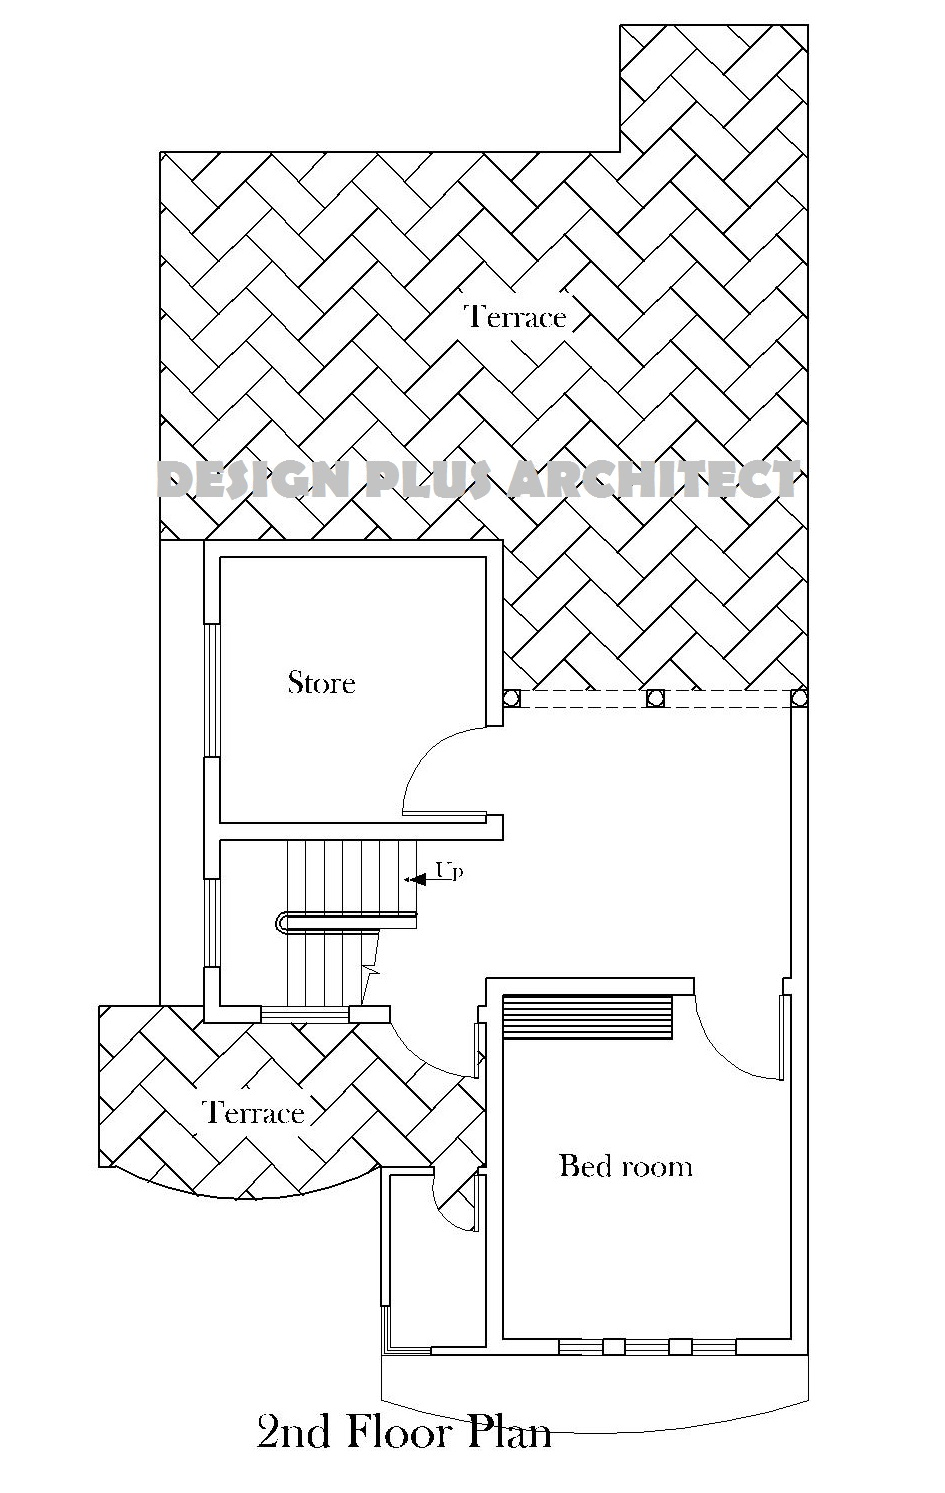 6 Marla 2D Home Design Covered Area